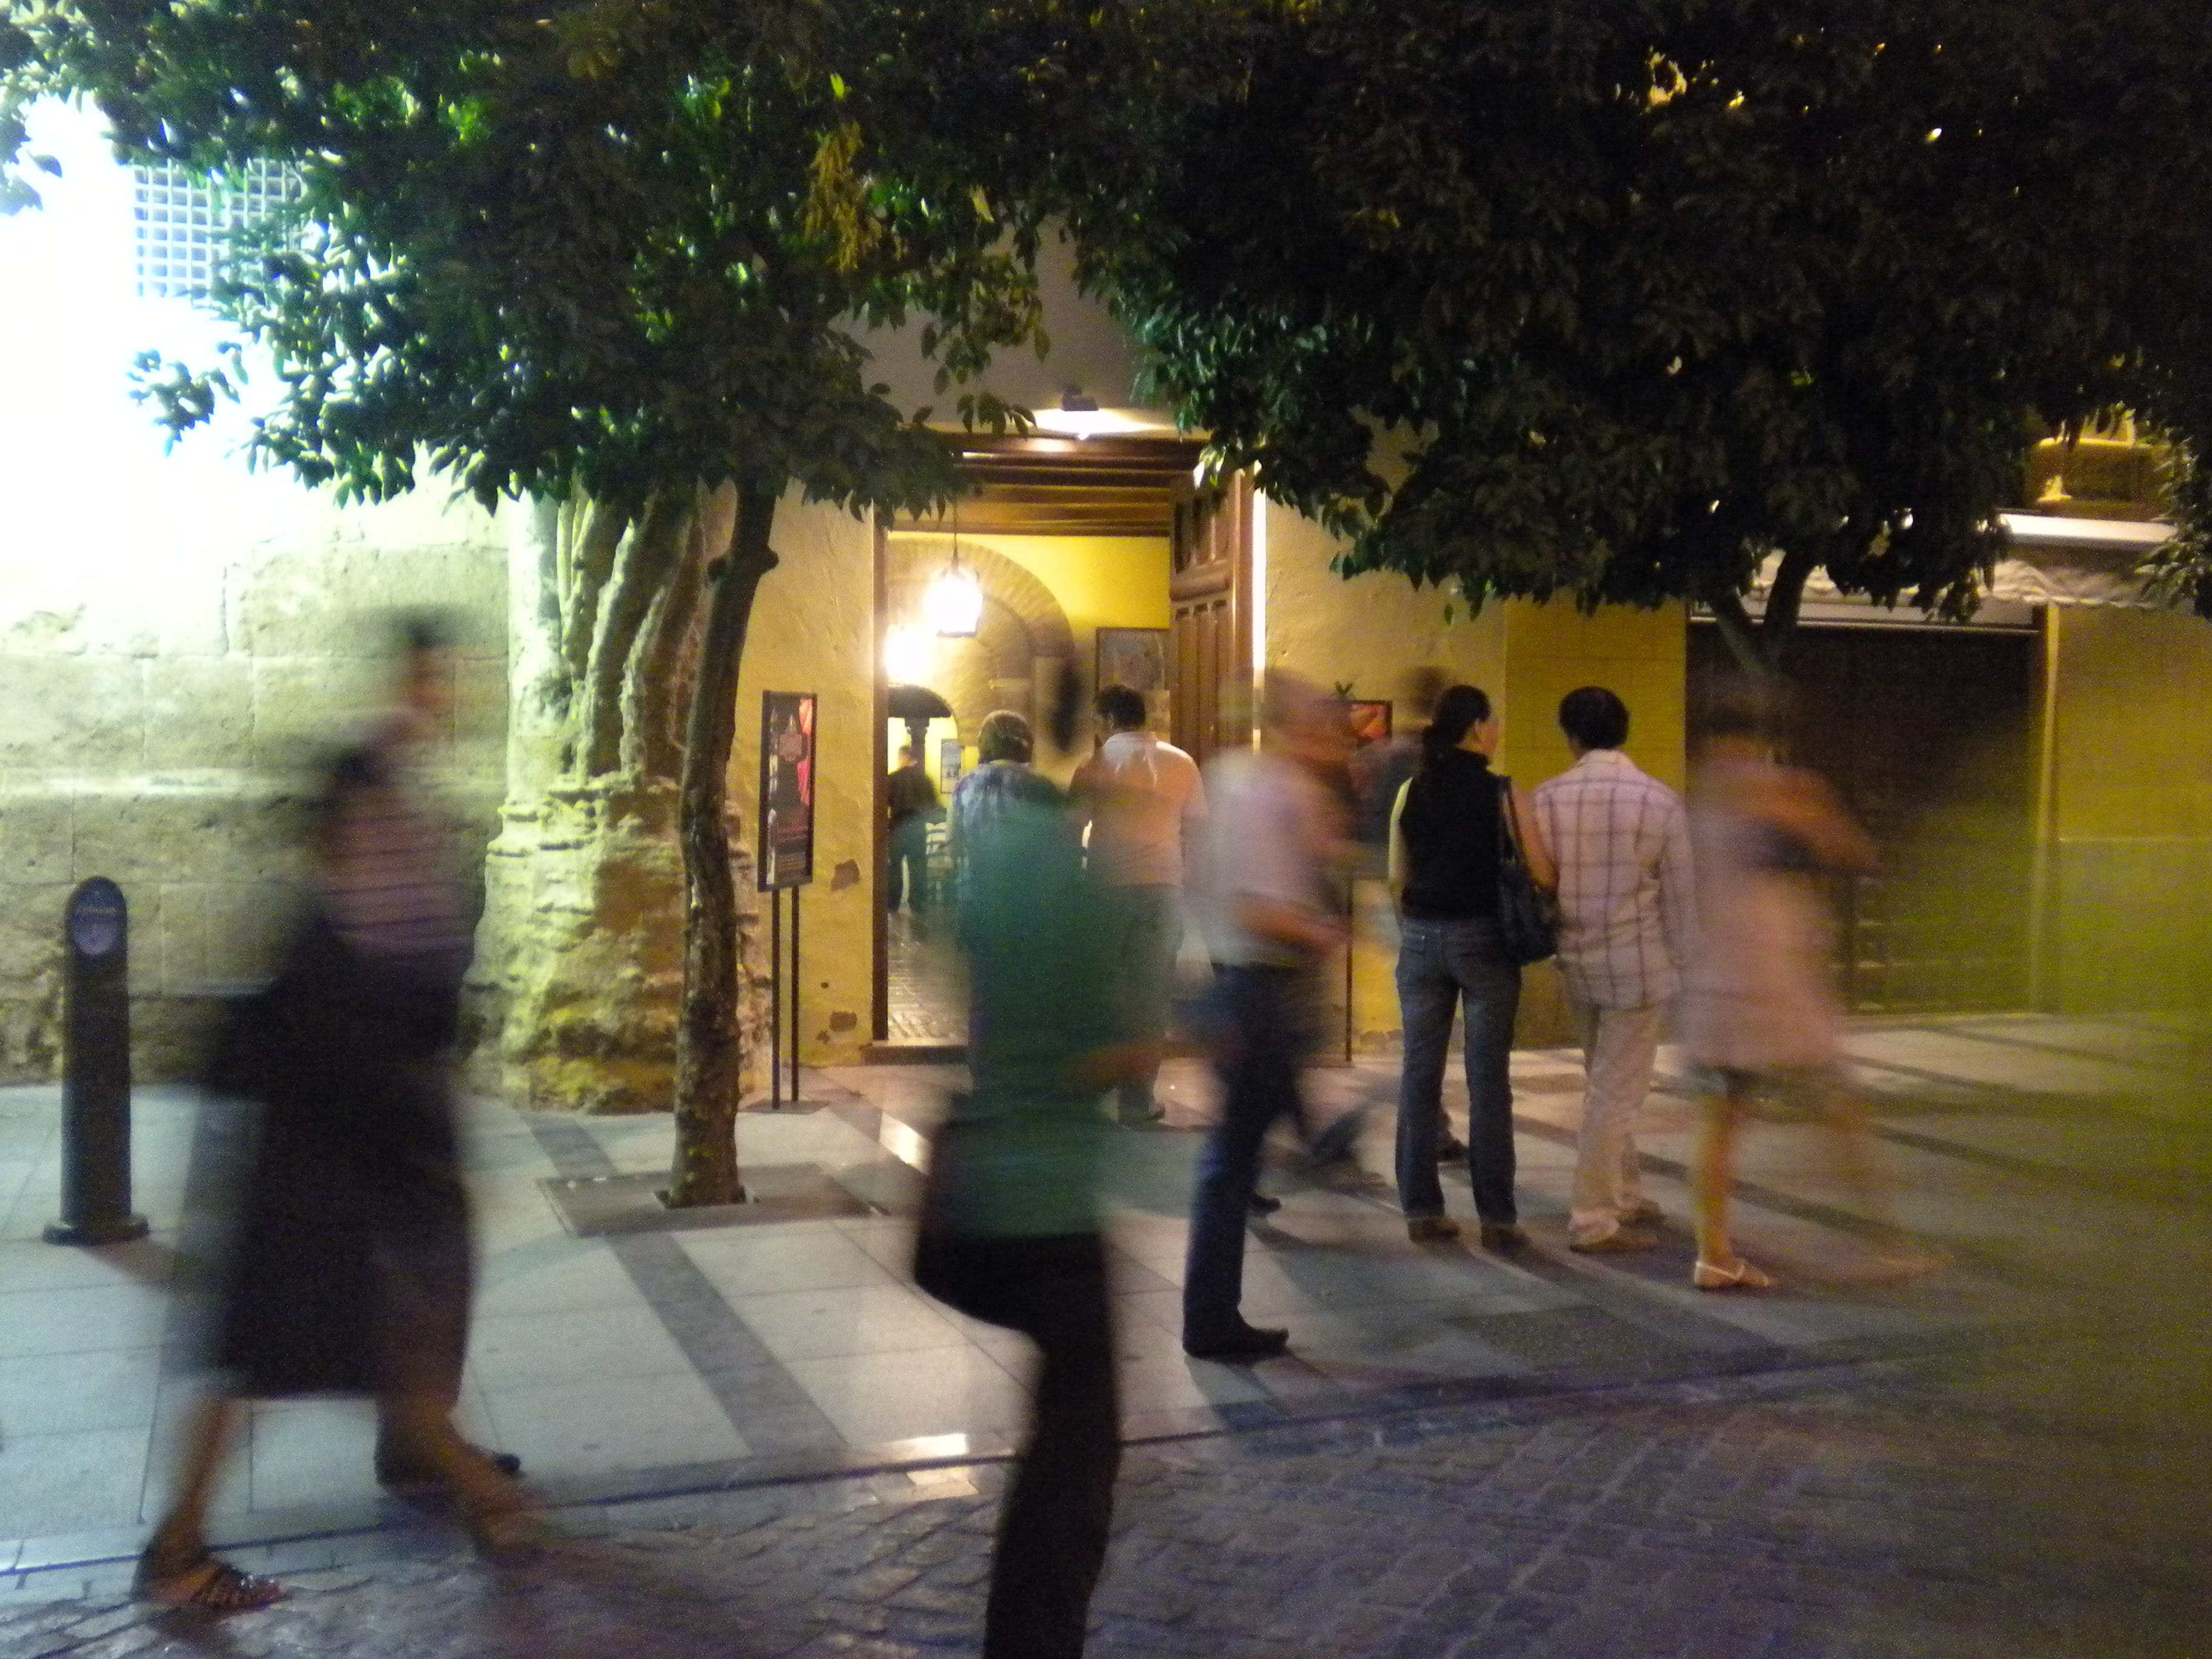 Cordoba night life